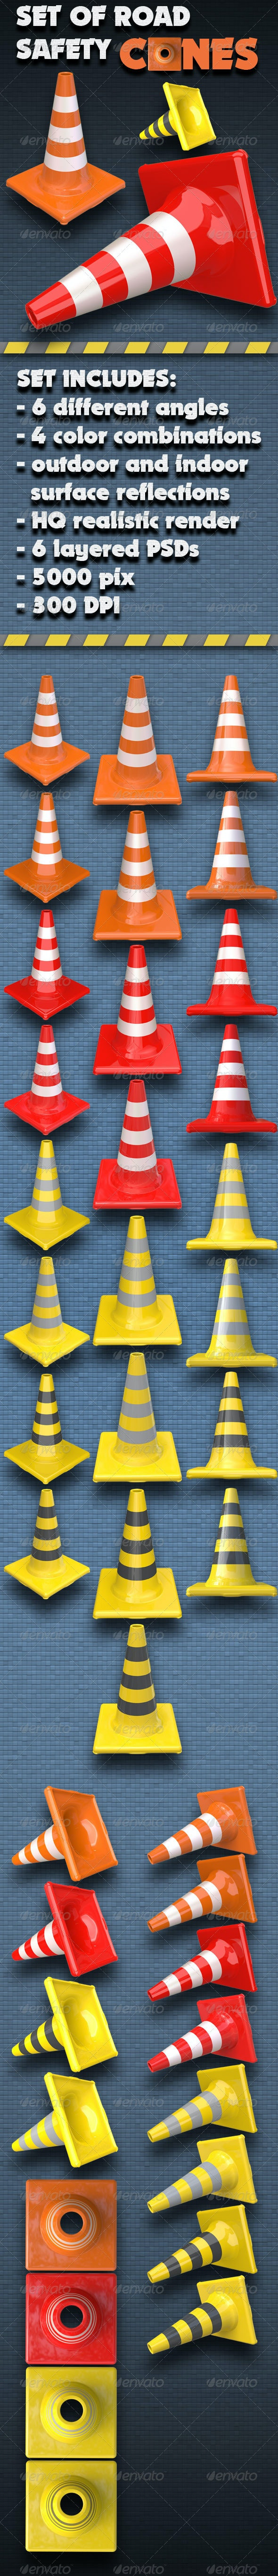 Set of Road Traffic Safety Cones - Objects 3D Renders